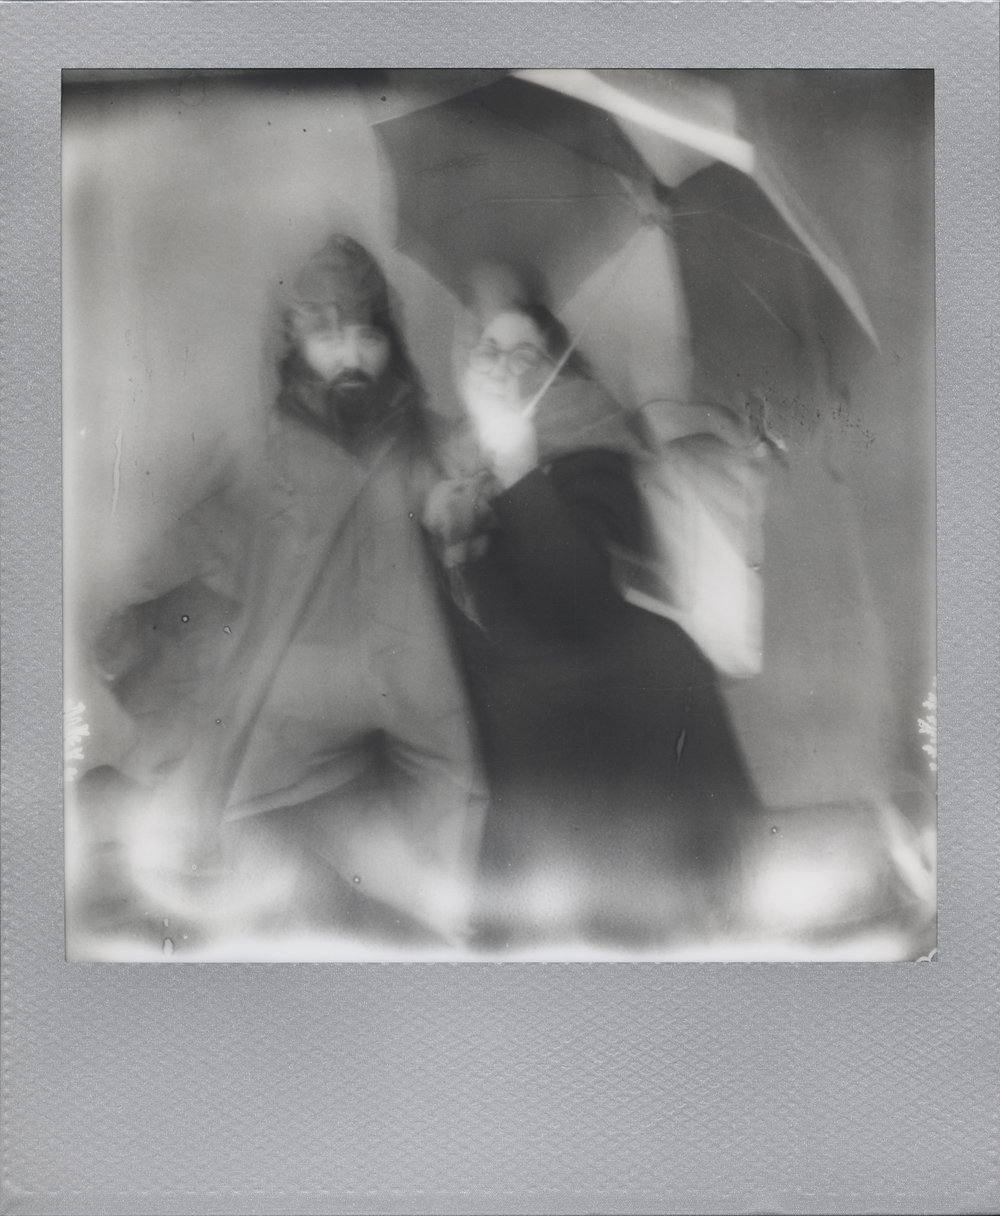 Ye Olden Days Lovers | SX70 | Impossible B&W | Ale Di Gangi